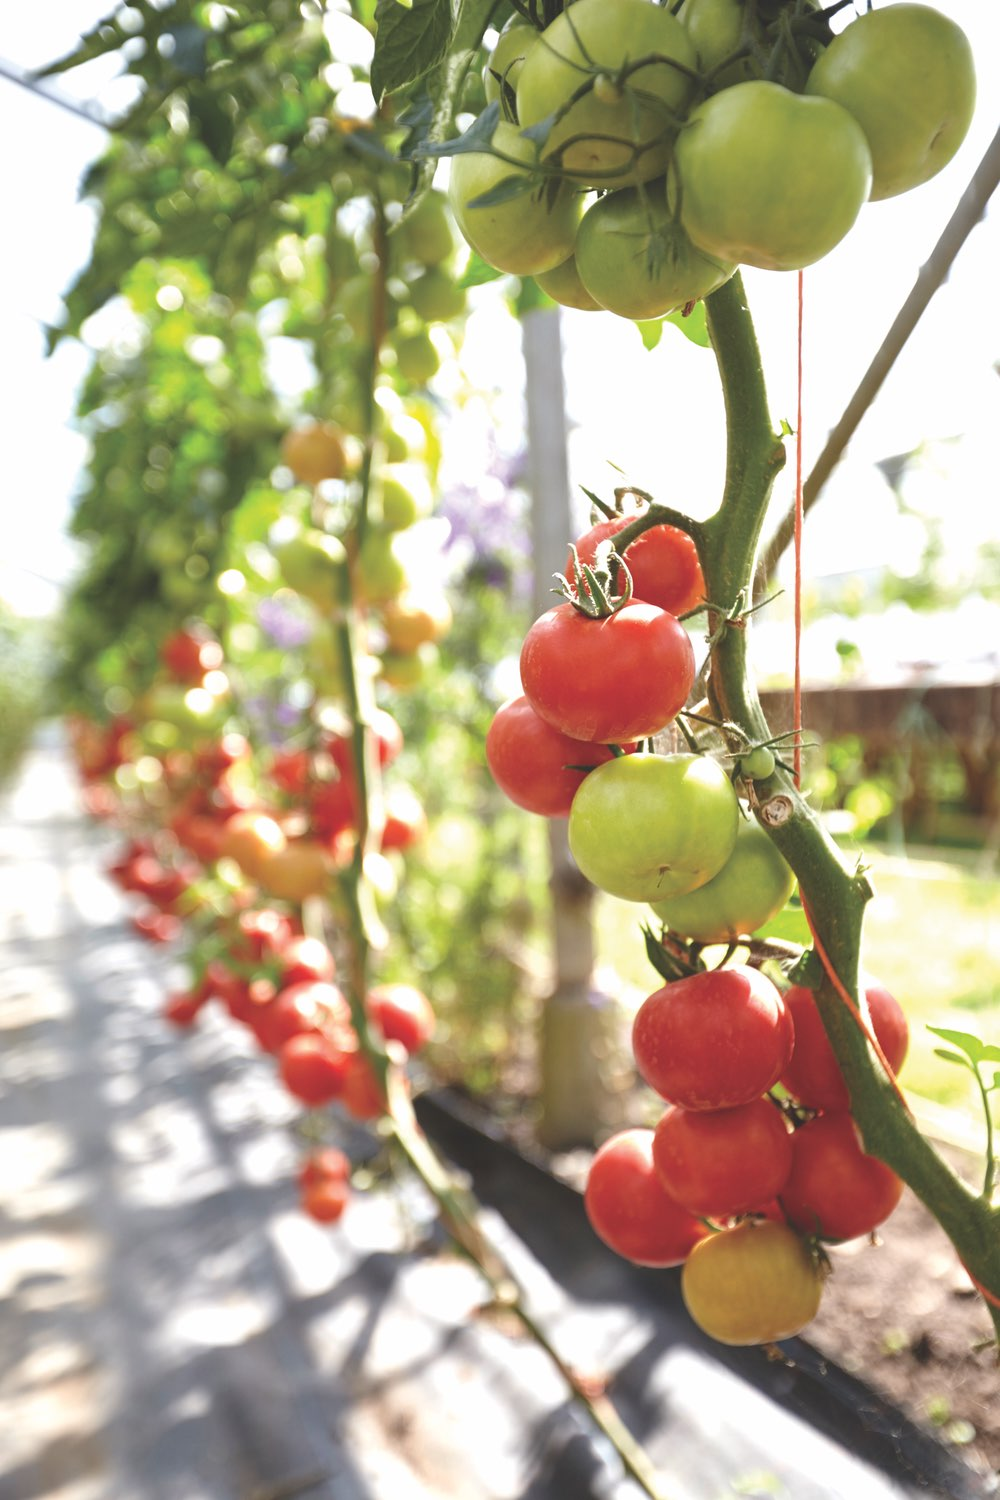 Tomatoes growing on a vine at Ballymaloe Cookery School